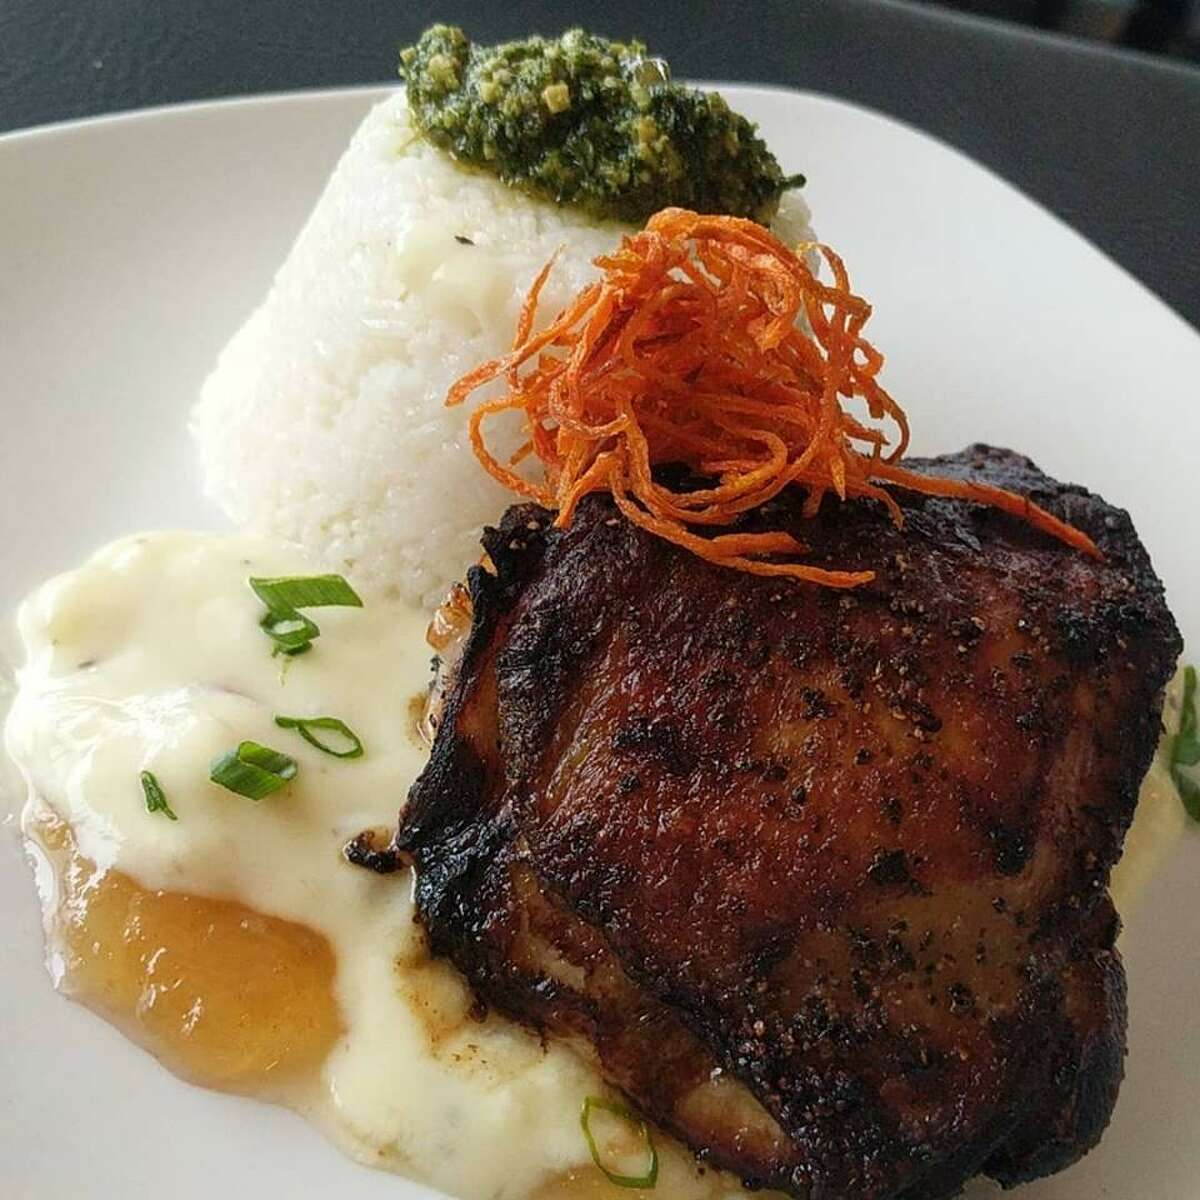 Pepper-crusted chicken thigh with sushi rice, garden pesto and coconut rum sauce at Sylver Spoon, a new restaurant and theater at 6700 N. Interstate 35 in New Braunfels.